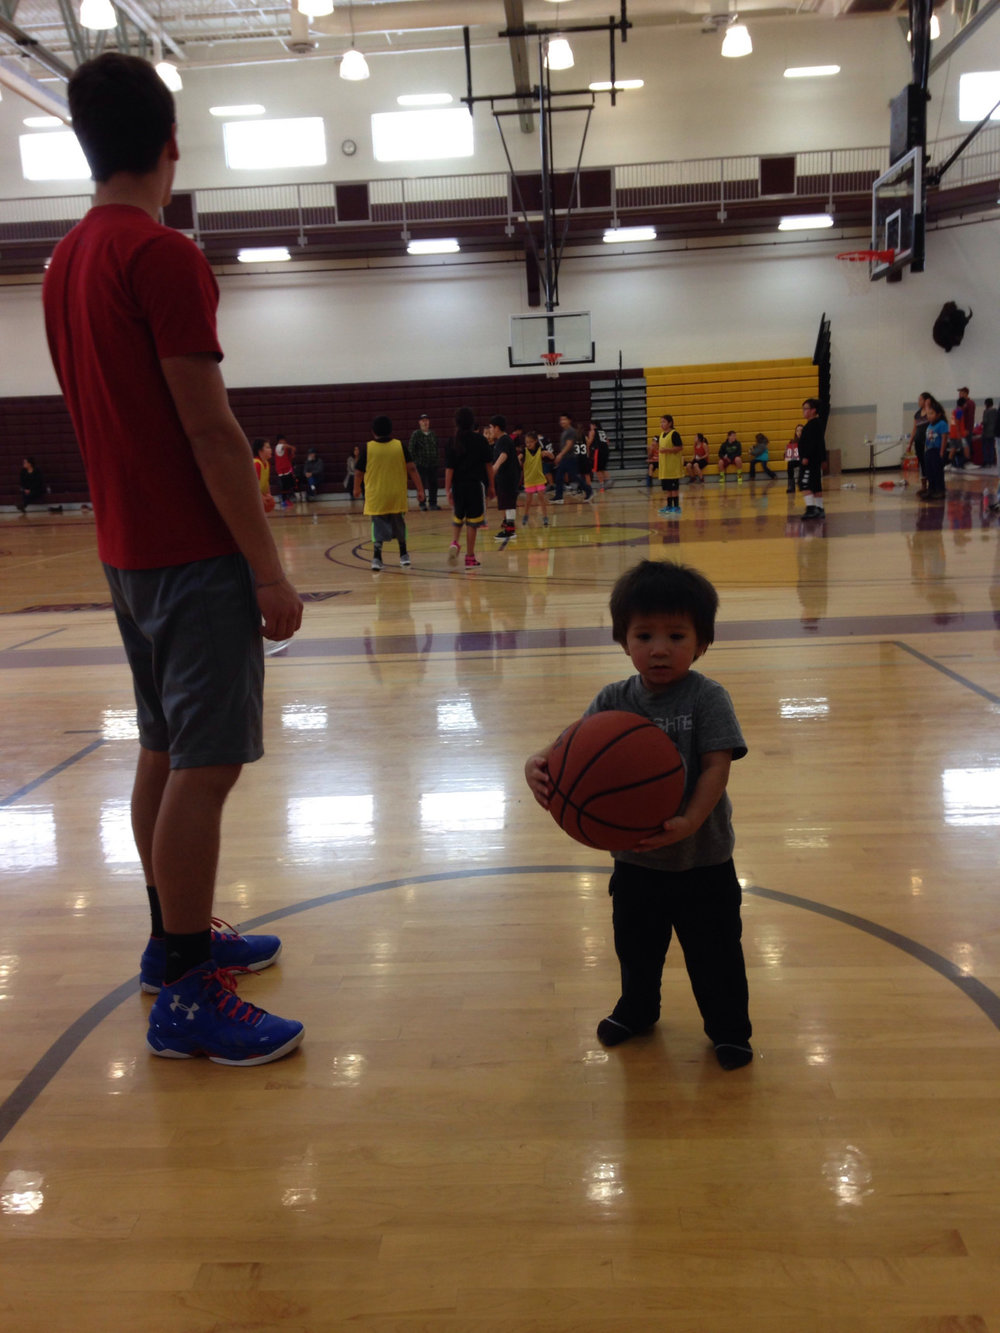 Here's Christian playing with one of the kids at the gym (one of our outreaches).  Normally kids this age aren't here but they were having a kids basketball tournament that day. Mostly it's college age people playing basketball, volleyball, or working out. Our purpose here is to just make friendships and show the Light here in a normal every day place.